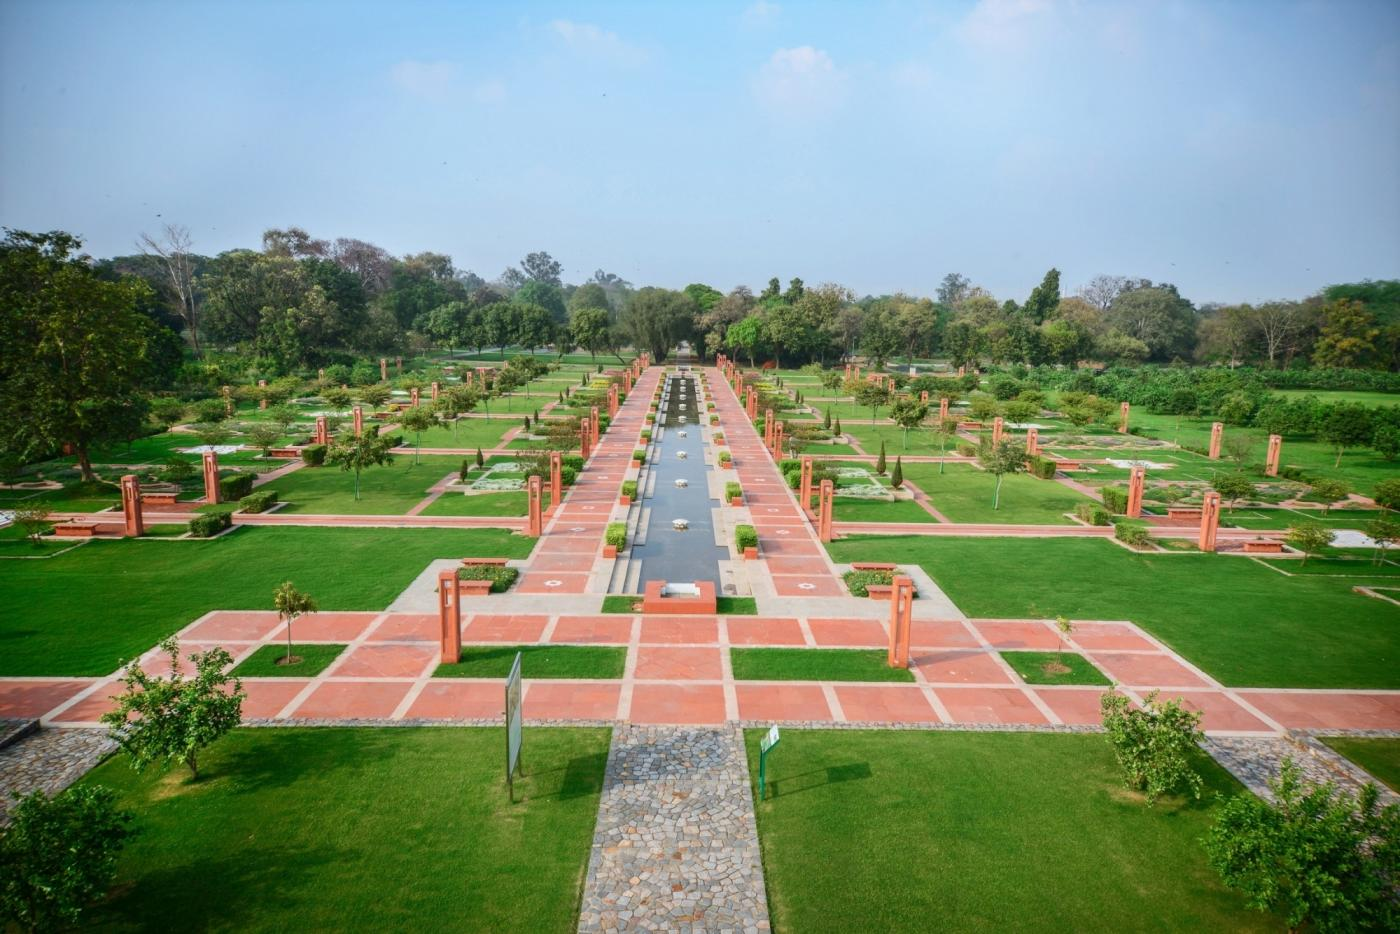 Sunder Nursery Central Axis - The design of this 560 m vista is inspired by the Persian carpet design and includes a central portion that in future years will form the heart of Sunder Nursery for visitors. (Photo Credit: The Aga Khan Trust for Culture) by .